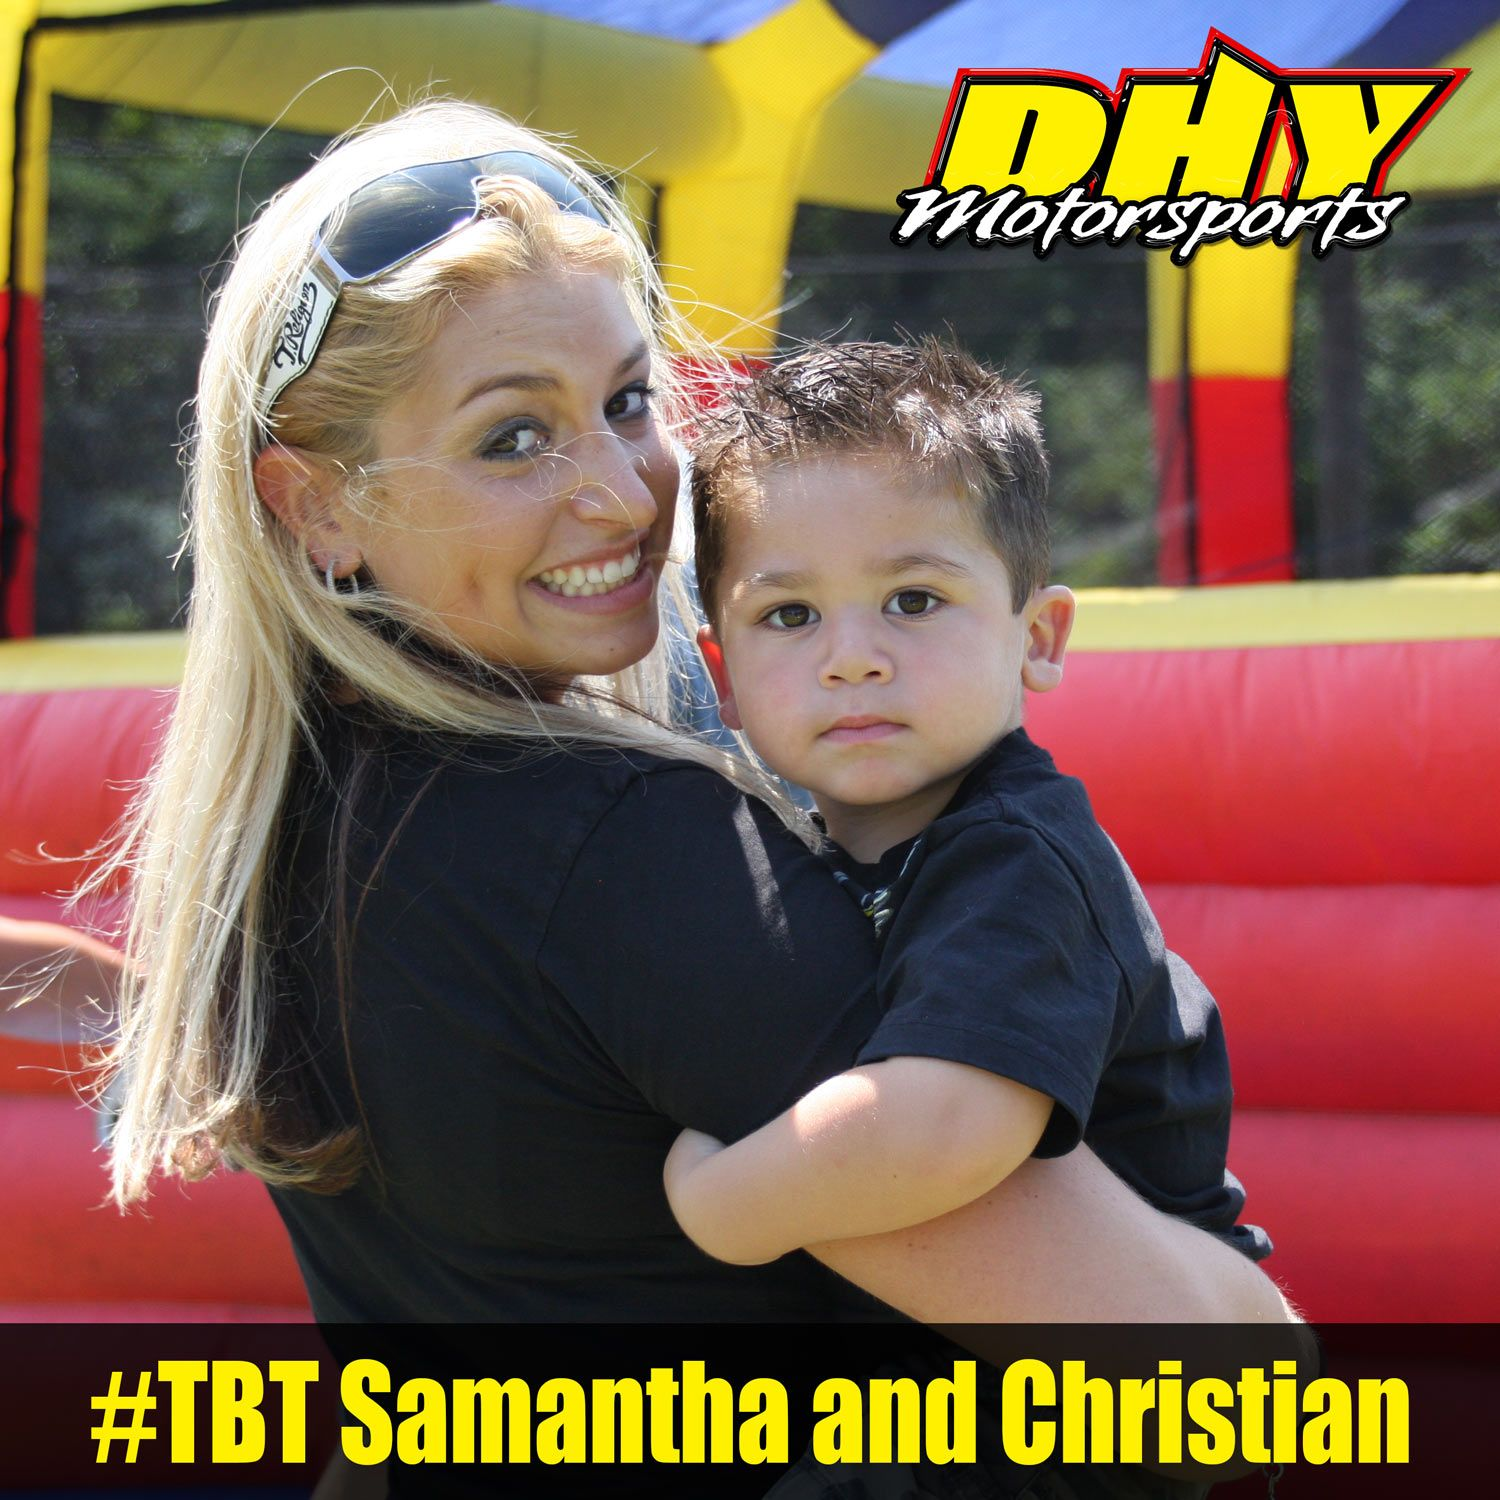 #TBT time warp to the #DHYMotorsports 2010 #SummerBash with Samantha and Christian getting ready for he bounce house